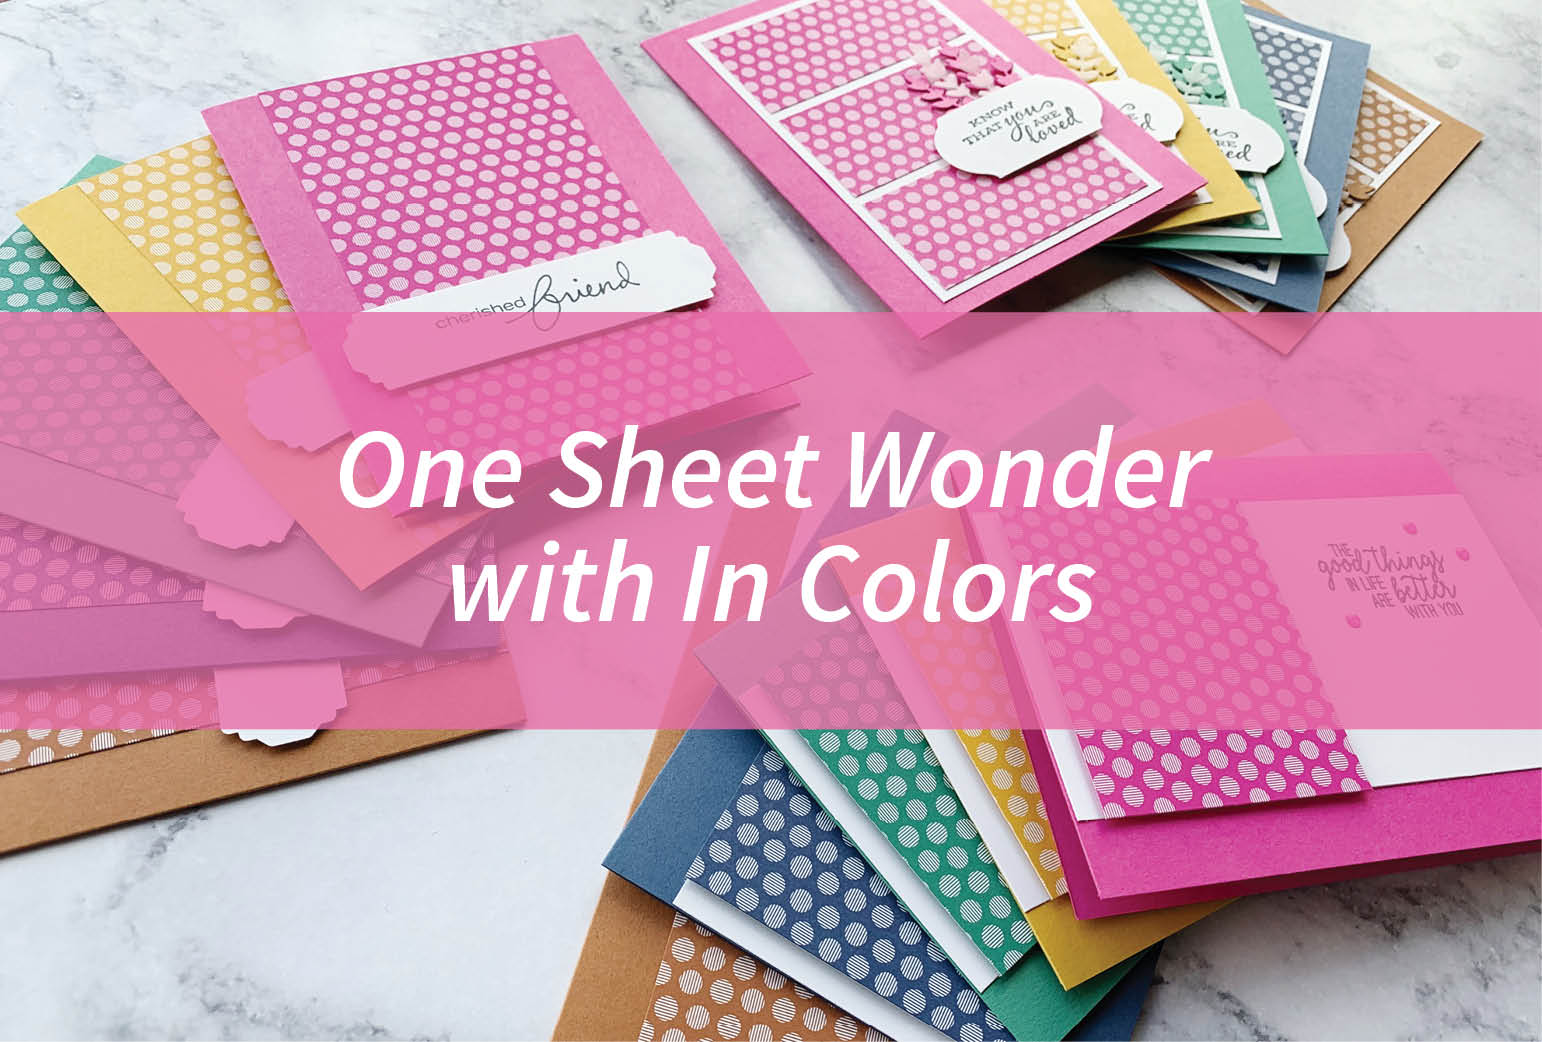 One Sheet Wonder with In Colors